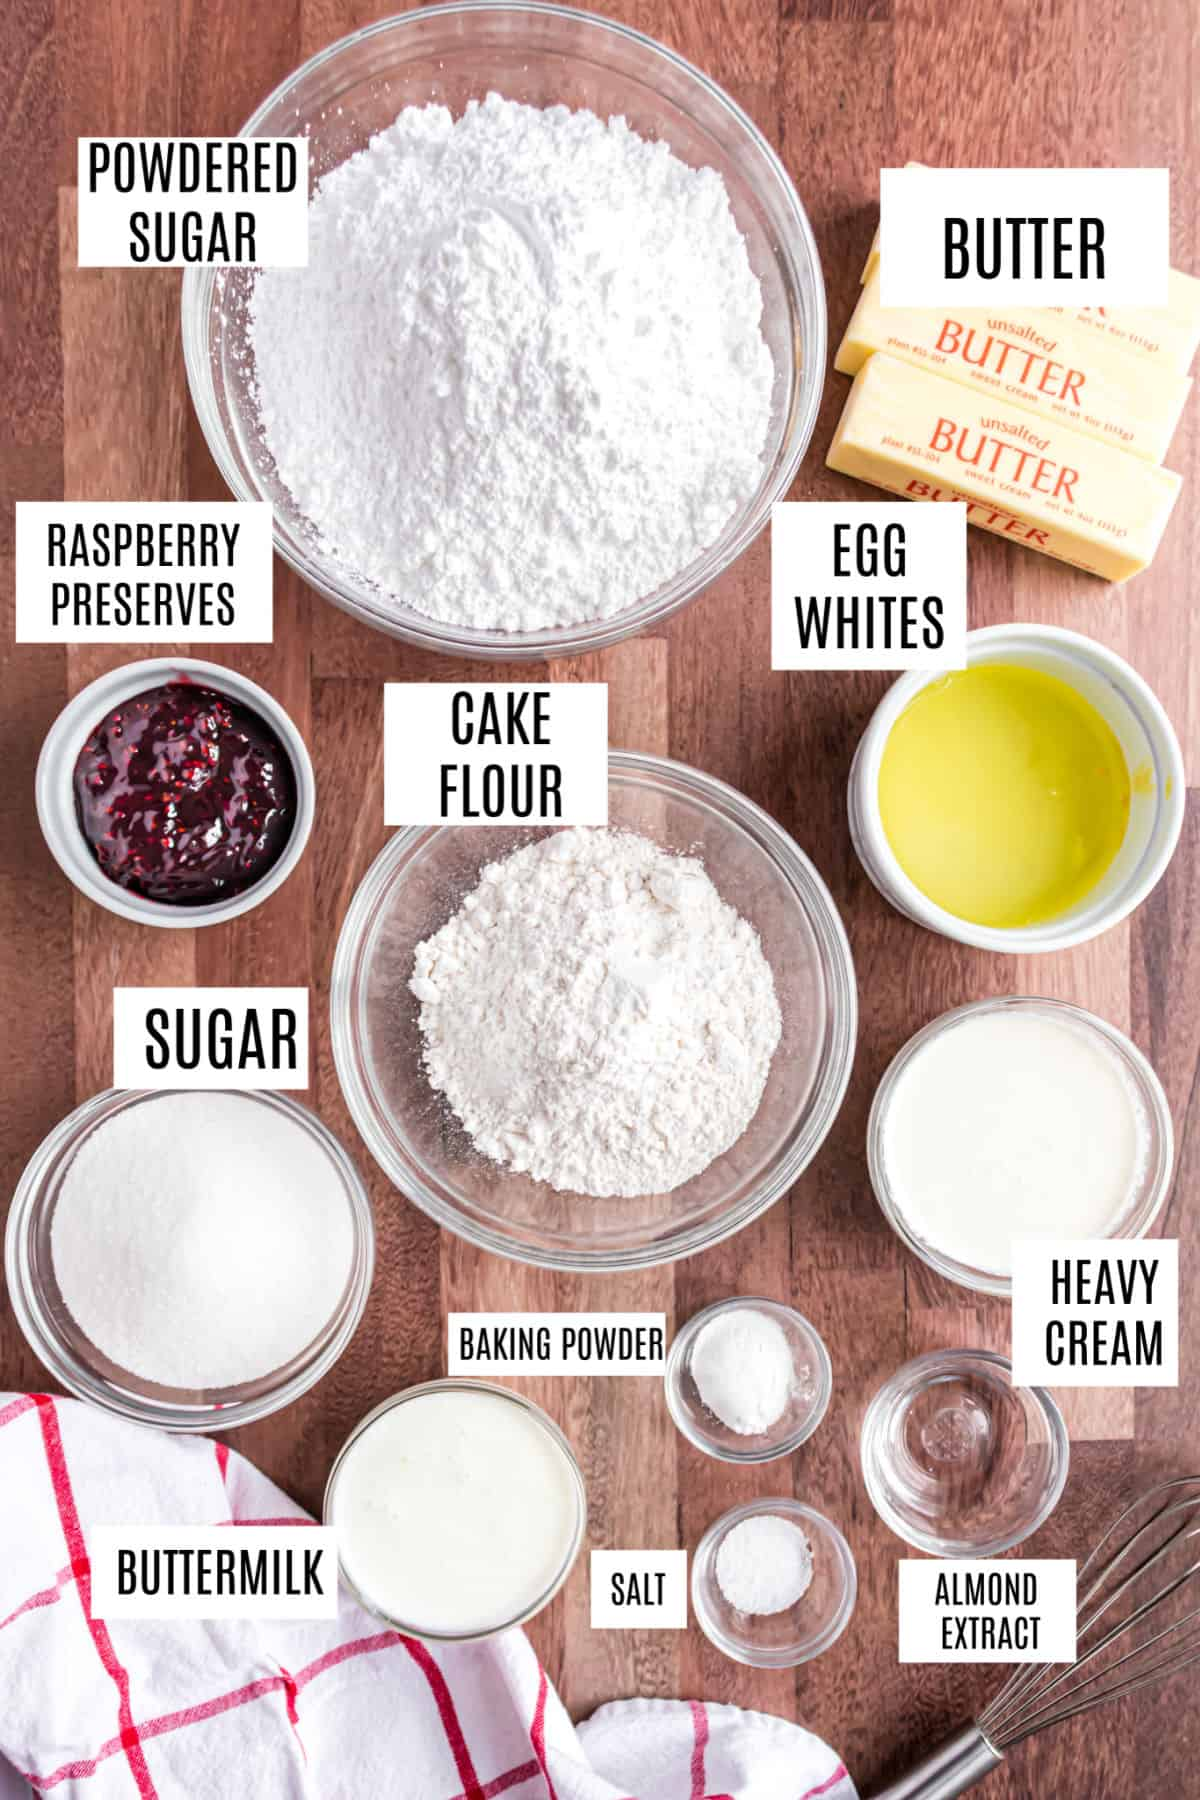 Ingredients needed for raspberry filled wedding cake cupcakes.